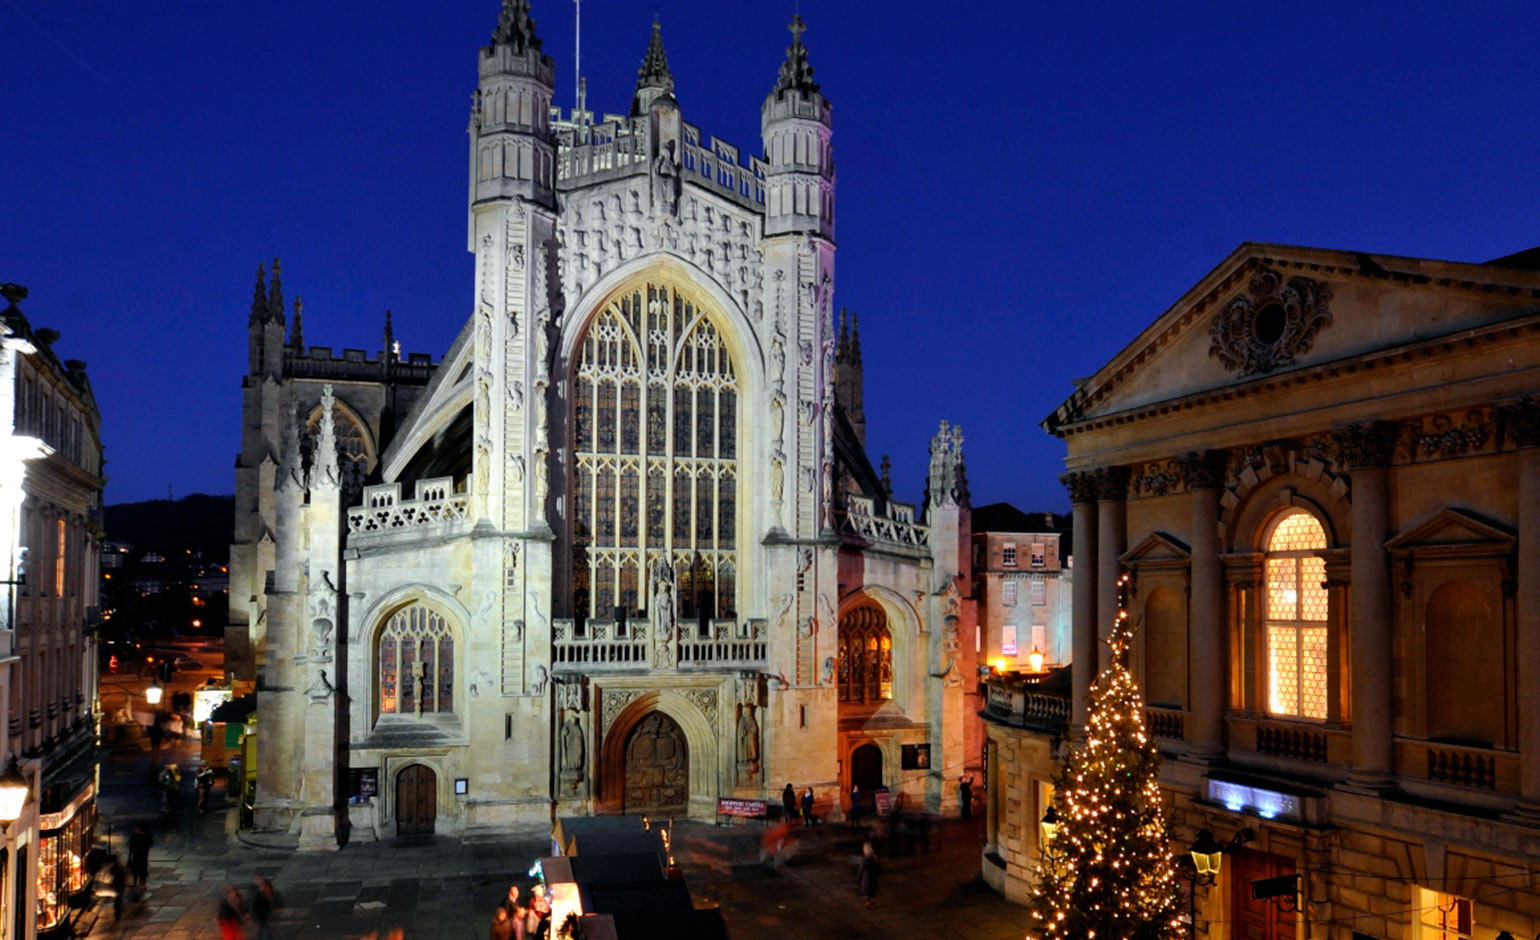 Bath Abbey set to welcome over 50,000 visitors through their doors this December